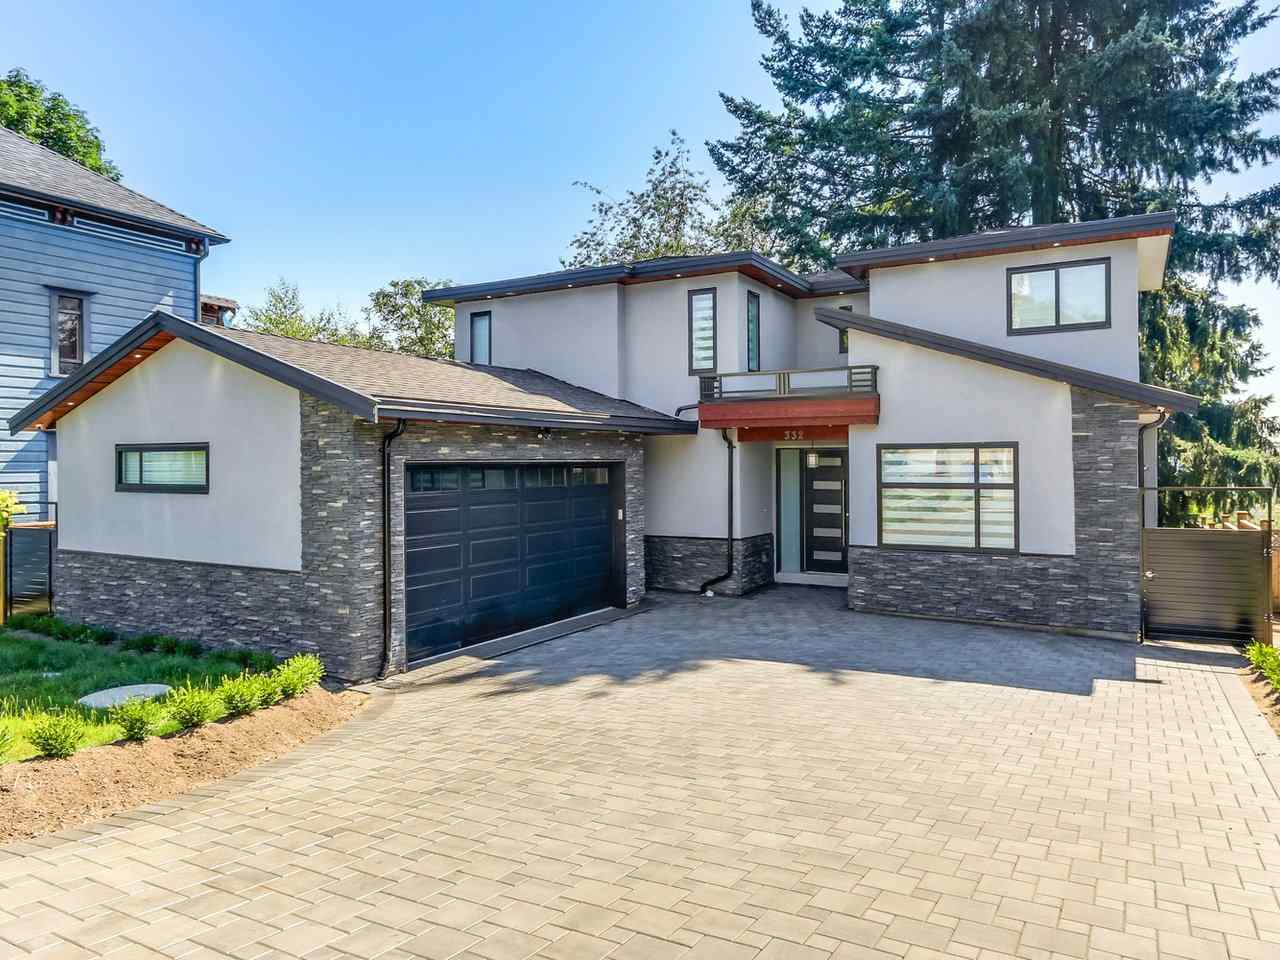 This gorgeous 2800 Sq ft plus 549sq ft crawl space, custom built luxury home is in the Brow of the Hill and sits on a 5500 sq ft treed, fenced lot and has 4 Bdrms & Baths & den, a 1 bdrm registered suite with separate laundry and entry. High ceilings on main, gorgeous gourmet kitchen with quartz counters, white maple cabinets, high quality engineered hardwood floors, top of the line SS appliances, gas stove, wine cooler, island which opens to spacious dinning, great room and den. You will enjoy the elec fireplace, AC, Hvac, 4 zone hot water heat, security camera & lighting, double garage and back up generator. Double car garage with power, mud/laundry room, and much more. 2-5-10 Warranty,